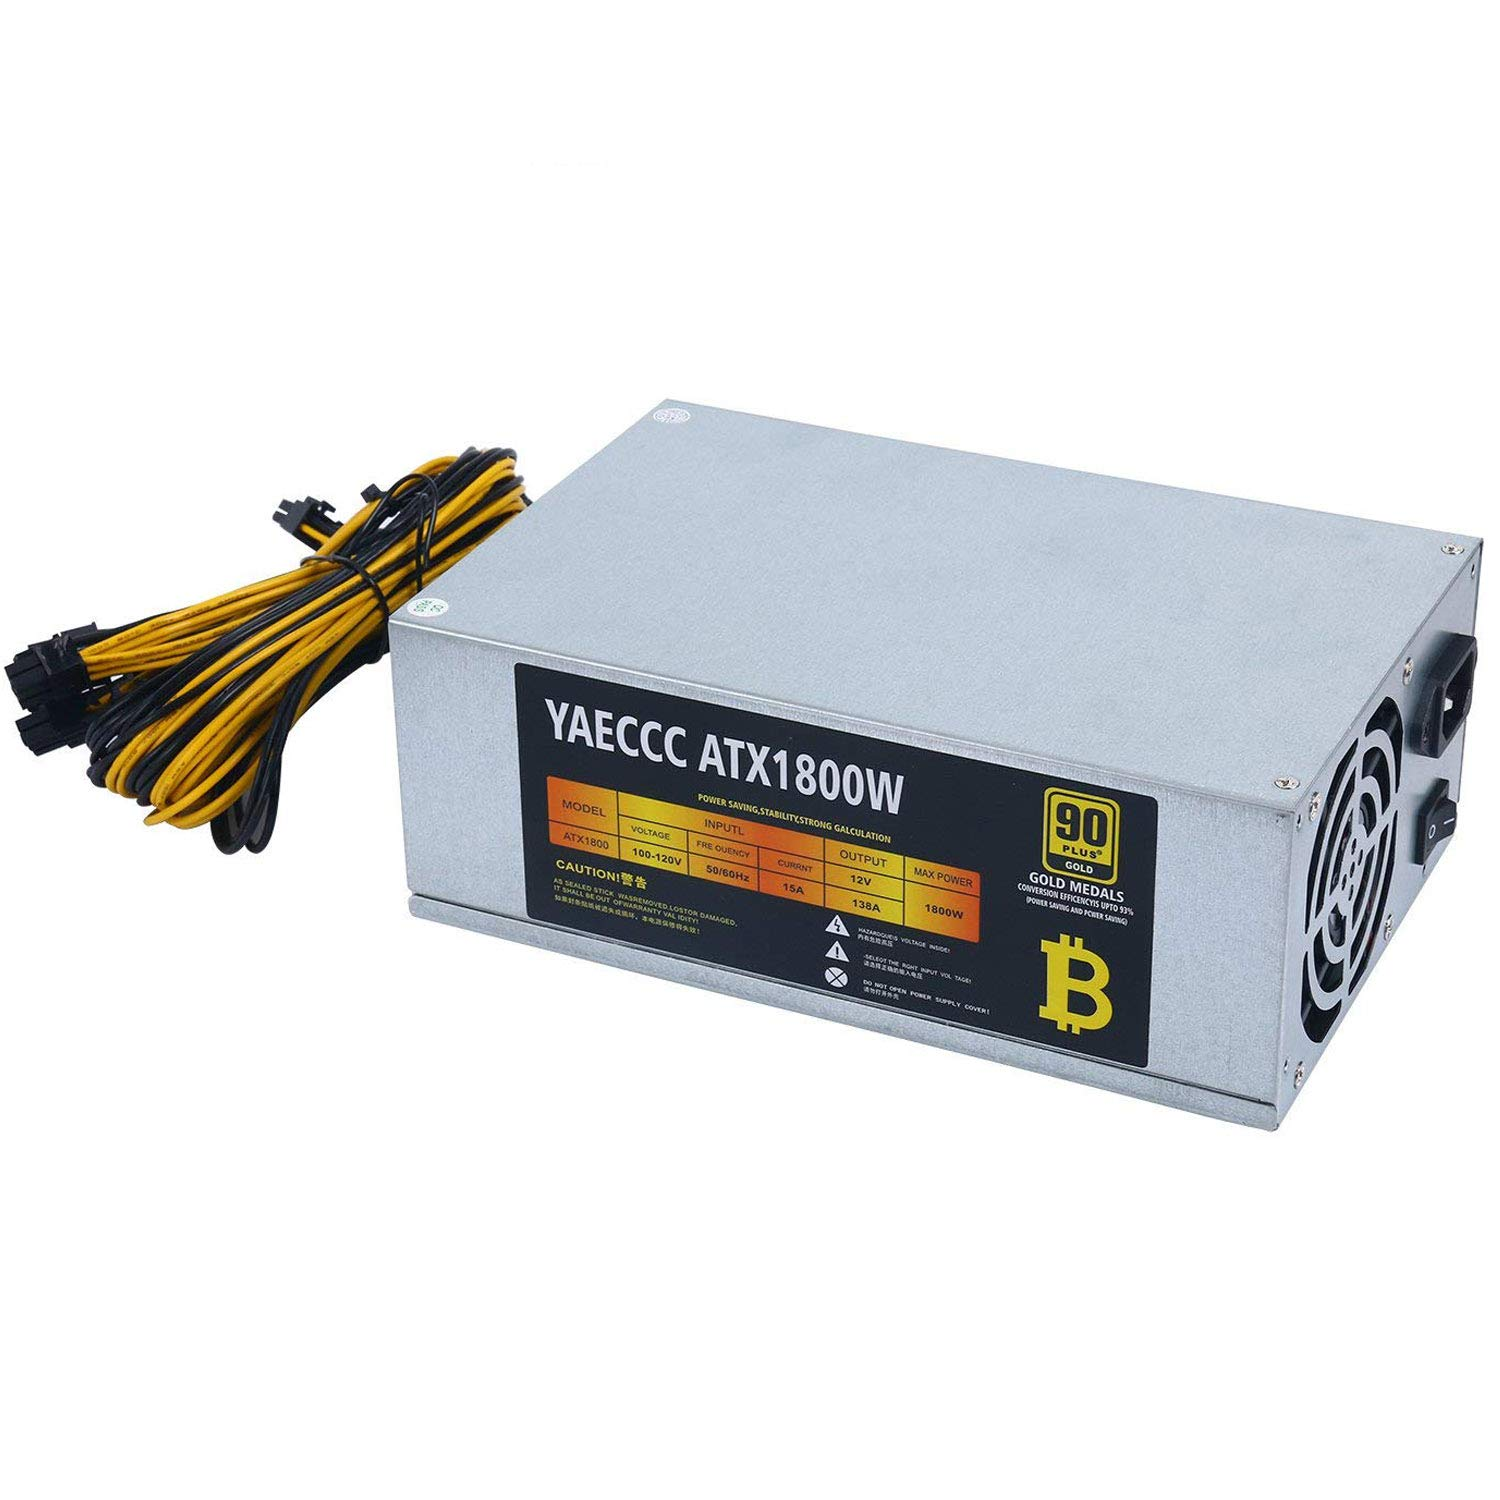 220V Miner Power Supply 1800W Power Supply 10x6 Pin Compatible with 6 GPU  Bitcoin Antminer S9 S7 L3+ D3 T9 E9 A4 A6 A7